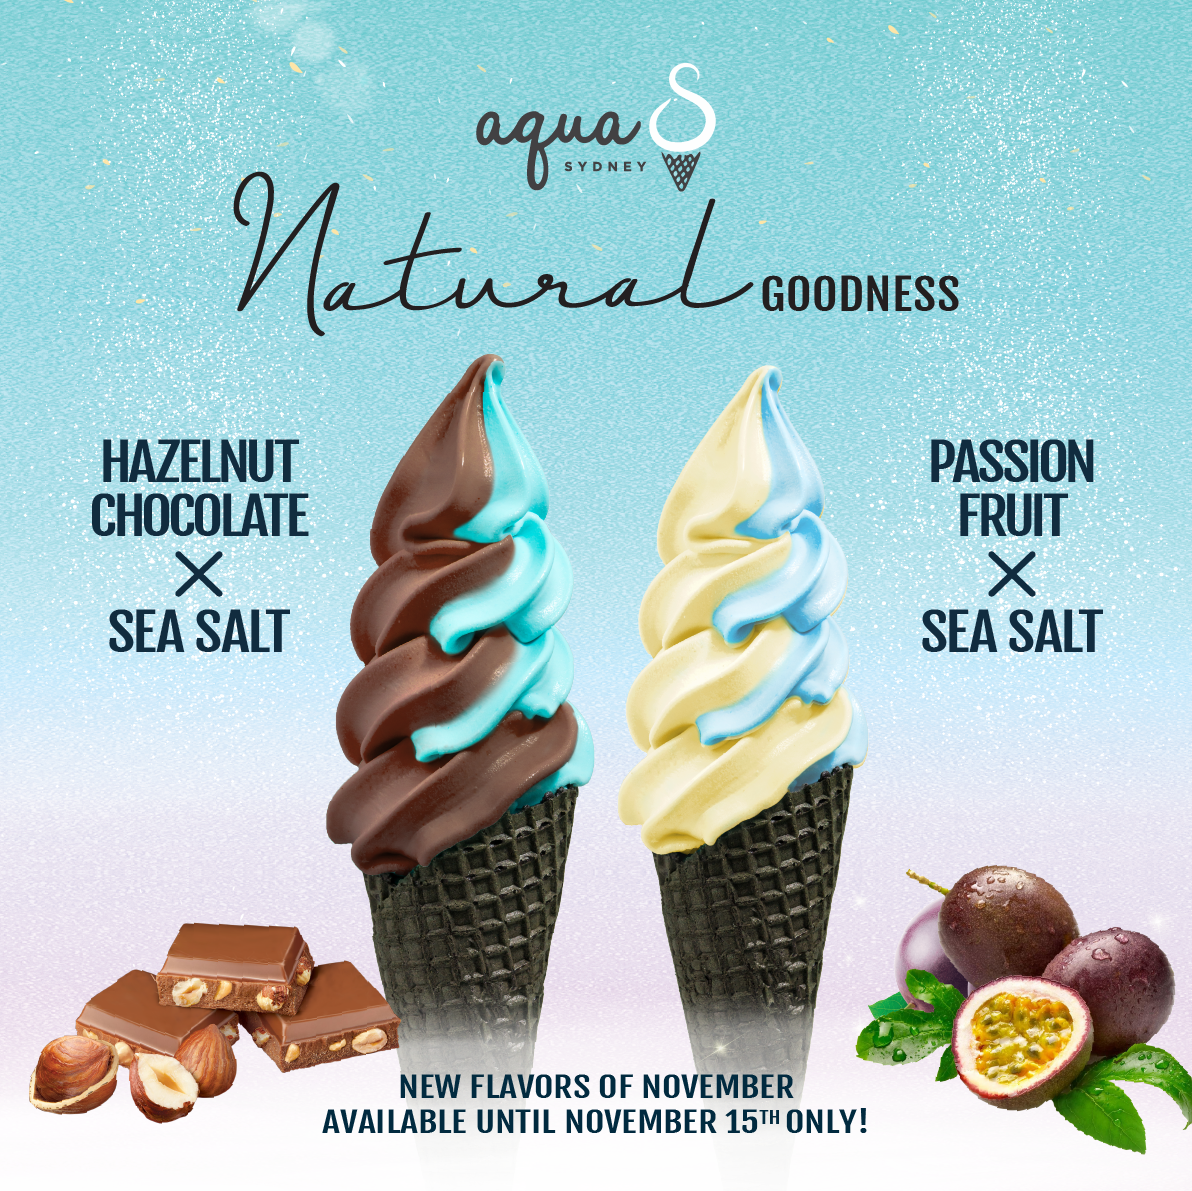 Flavor Archive Aqua S US in 2020 Chocolate fruit, New